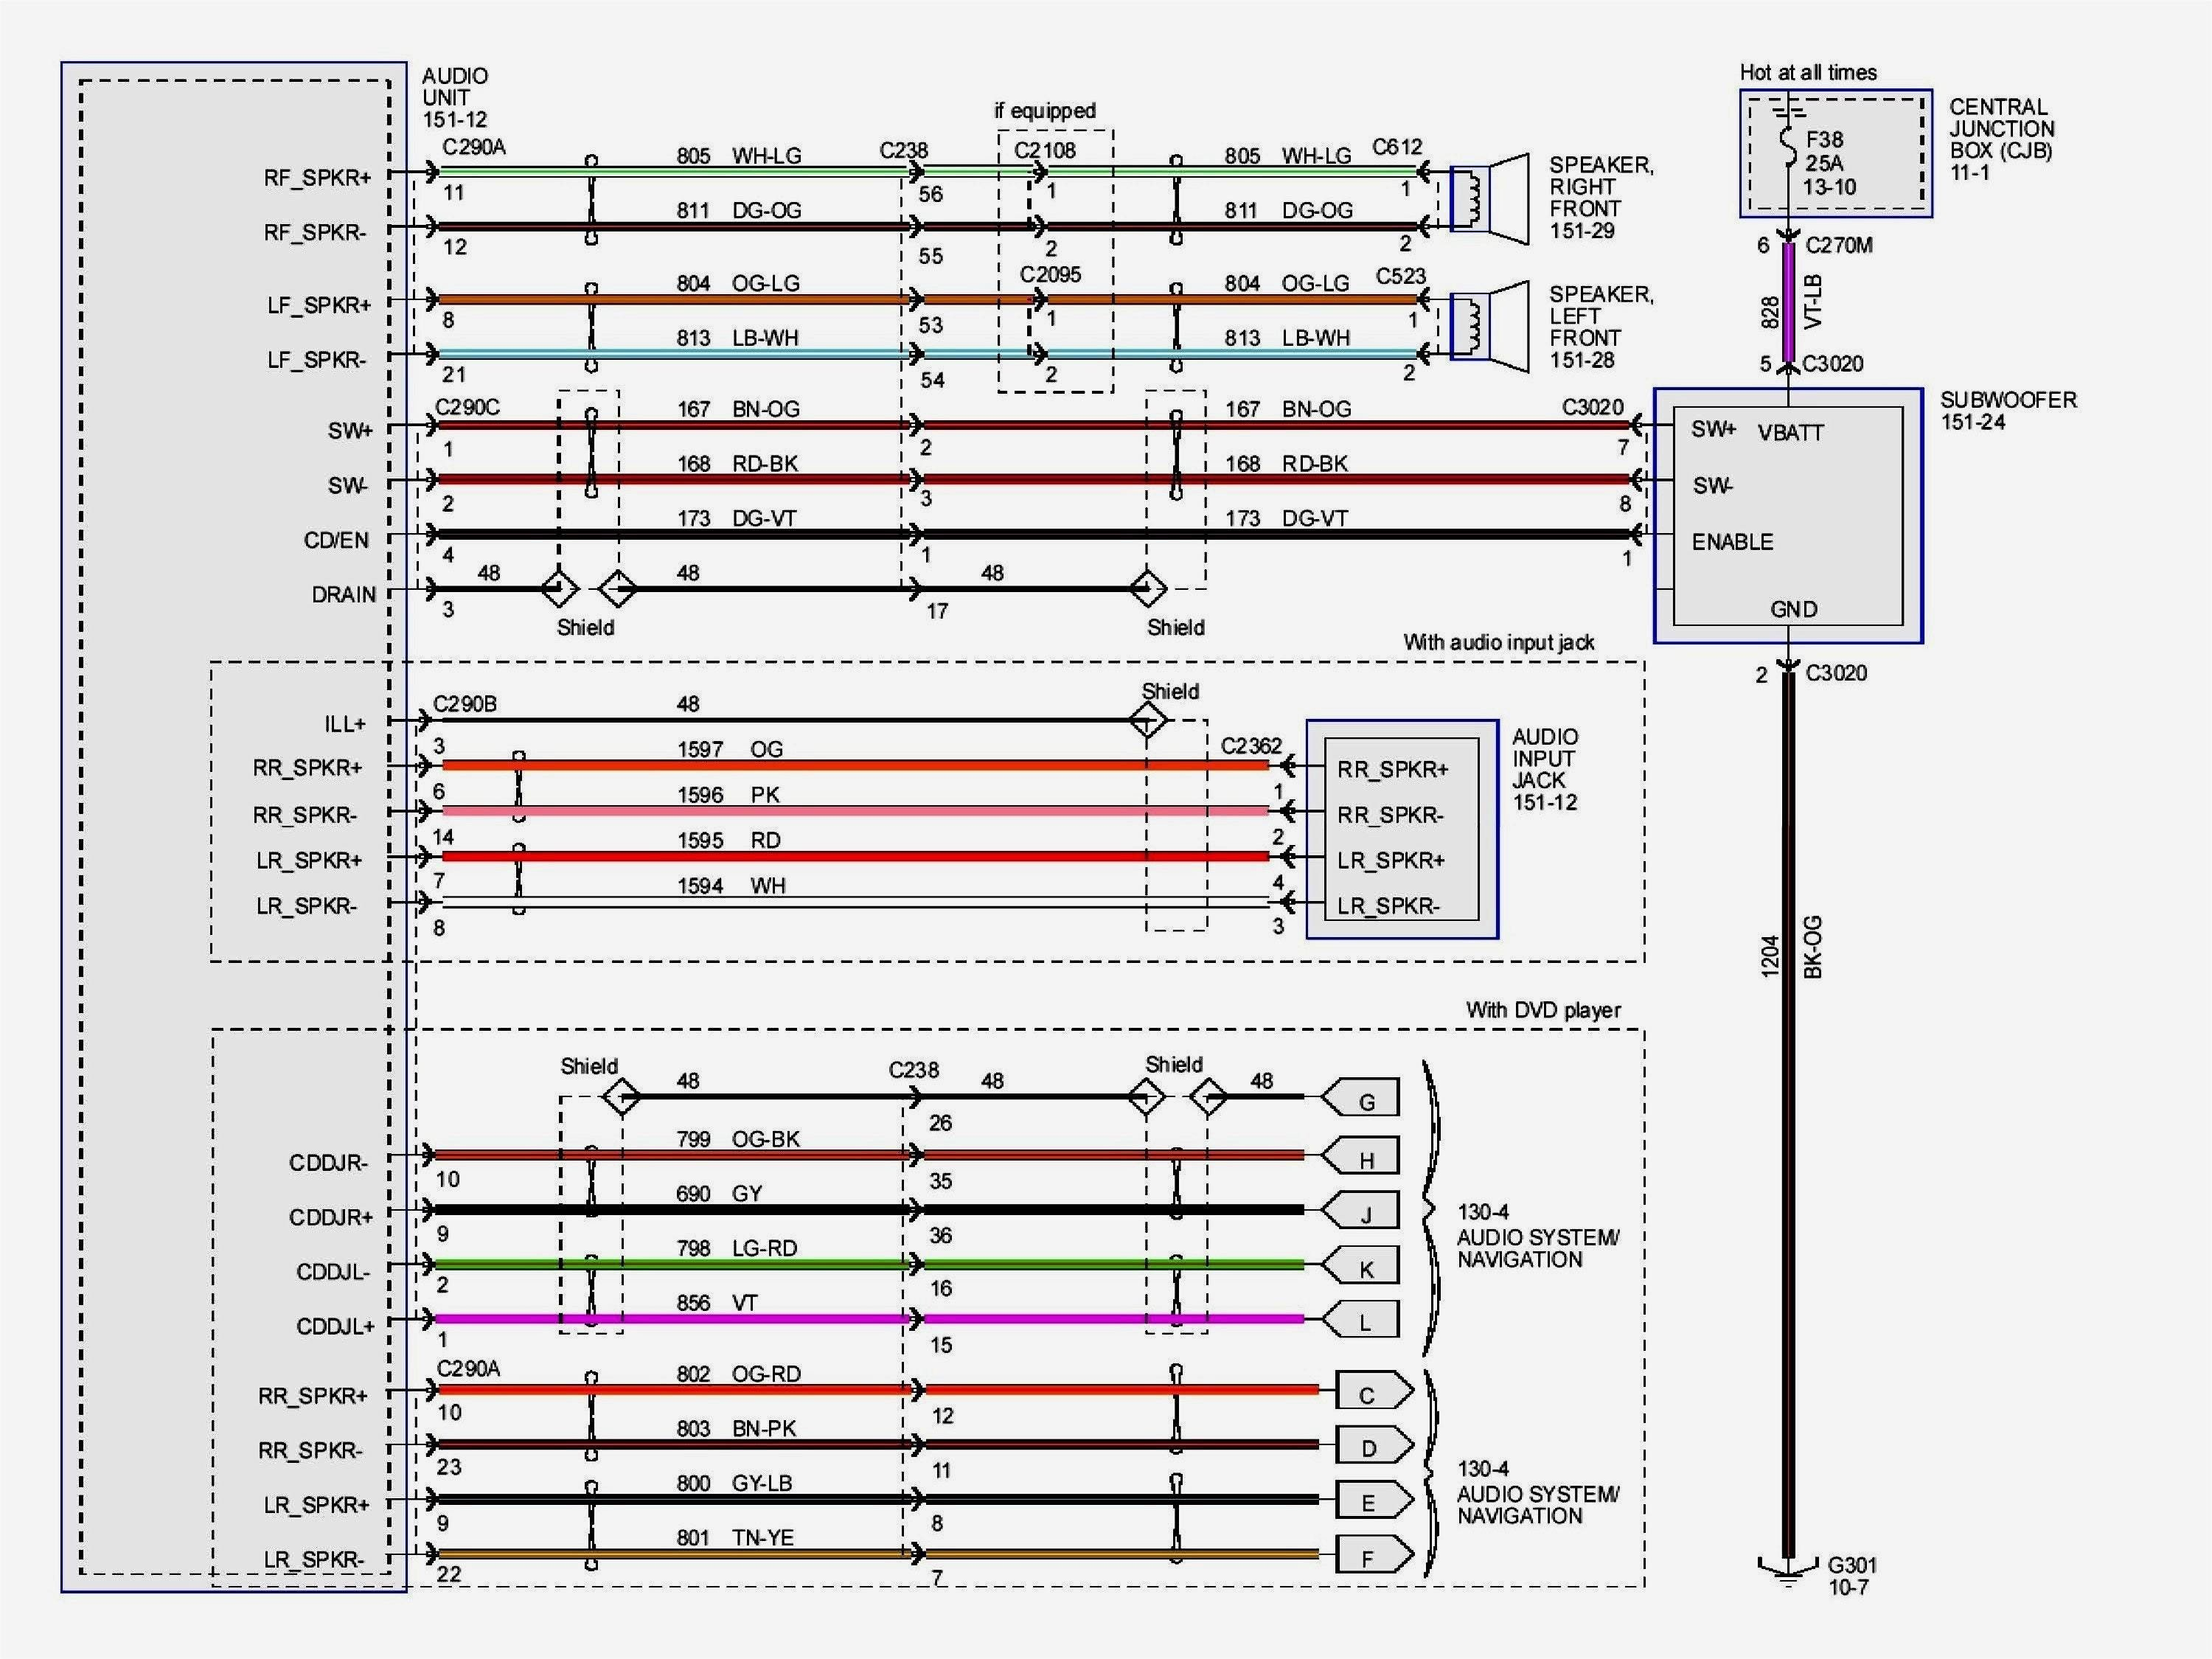 dodge speaker wiring diagram - wiring diagrams cute-site-a -  cute-site-a.alcuoredeldiabete.it  al cuore del diabete